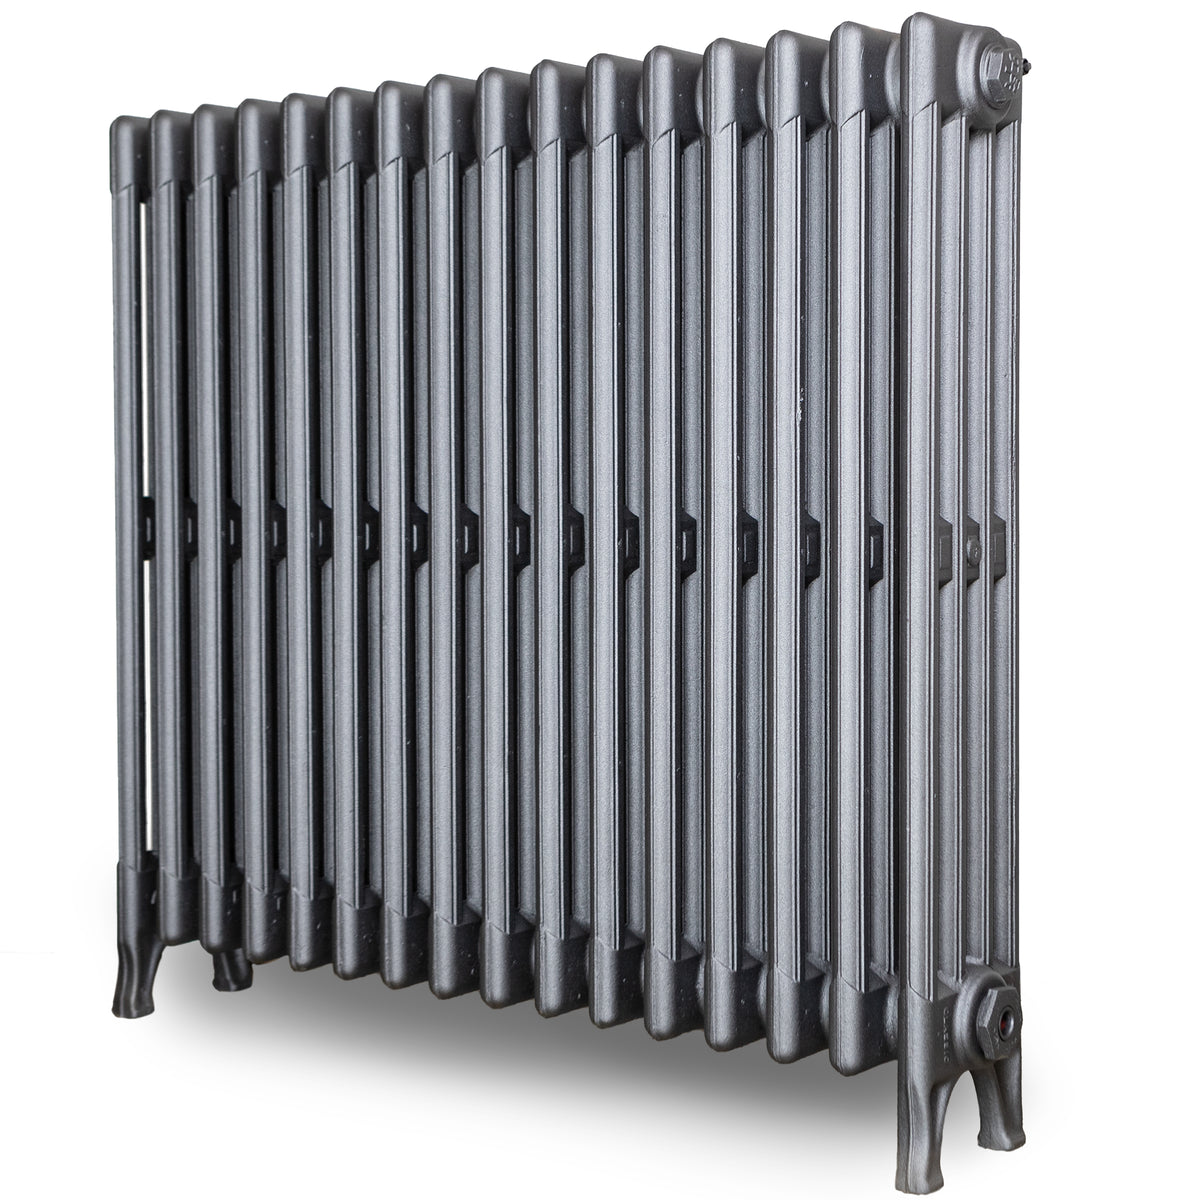 Fully Restored Cast Iron Radiator 4 Column, (76cm Tall x 83cm Long ) | The Architectural Forum